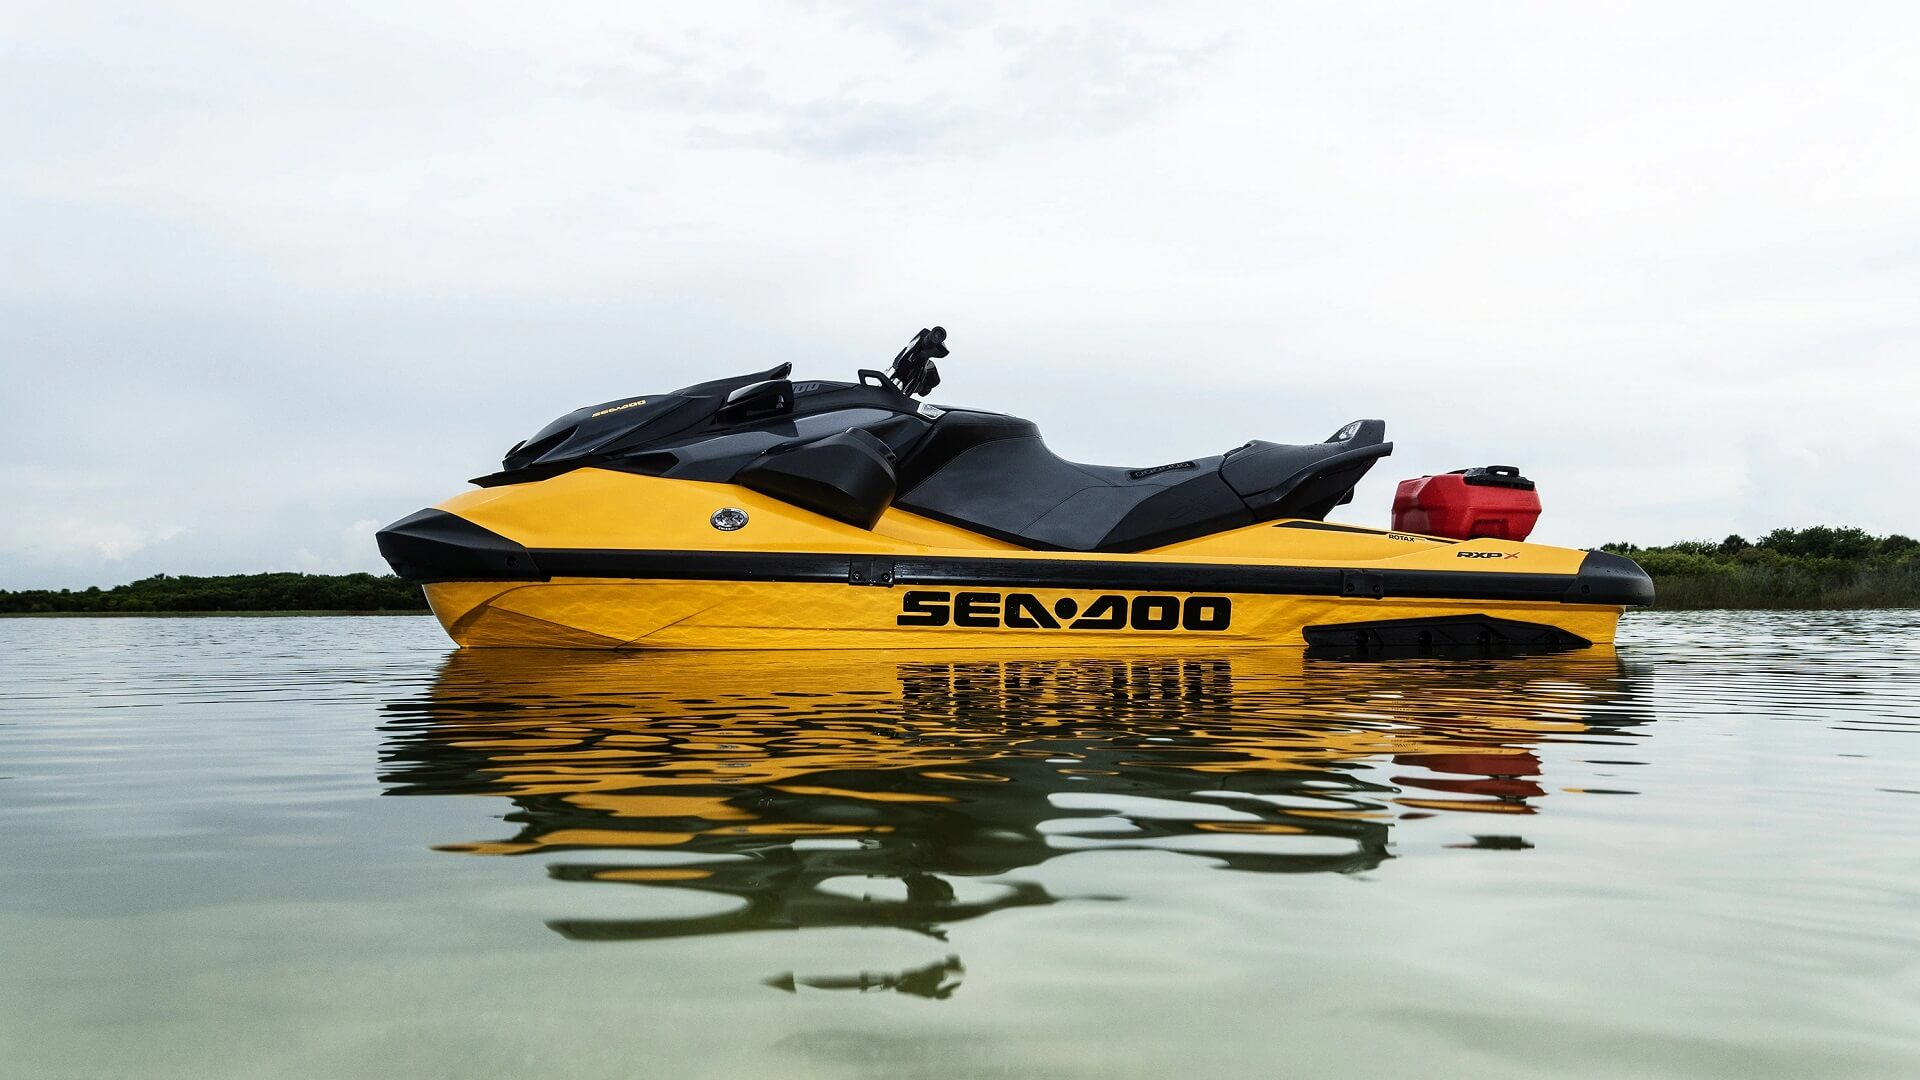 Jetski 2021 Quickest Personal Watercraft